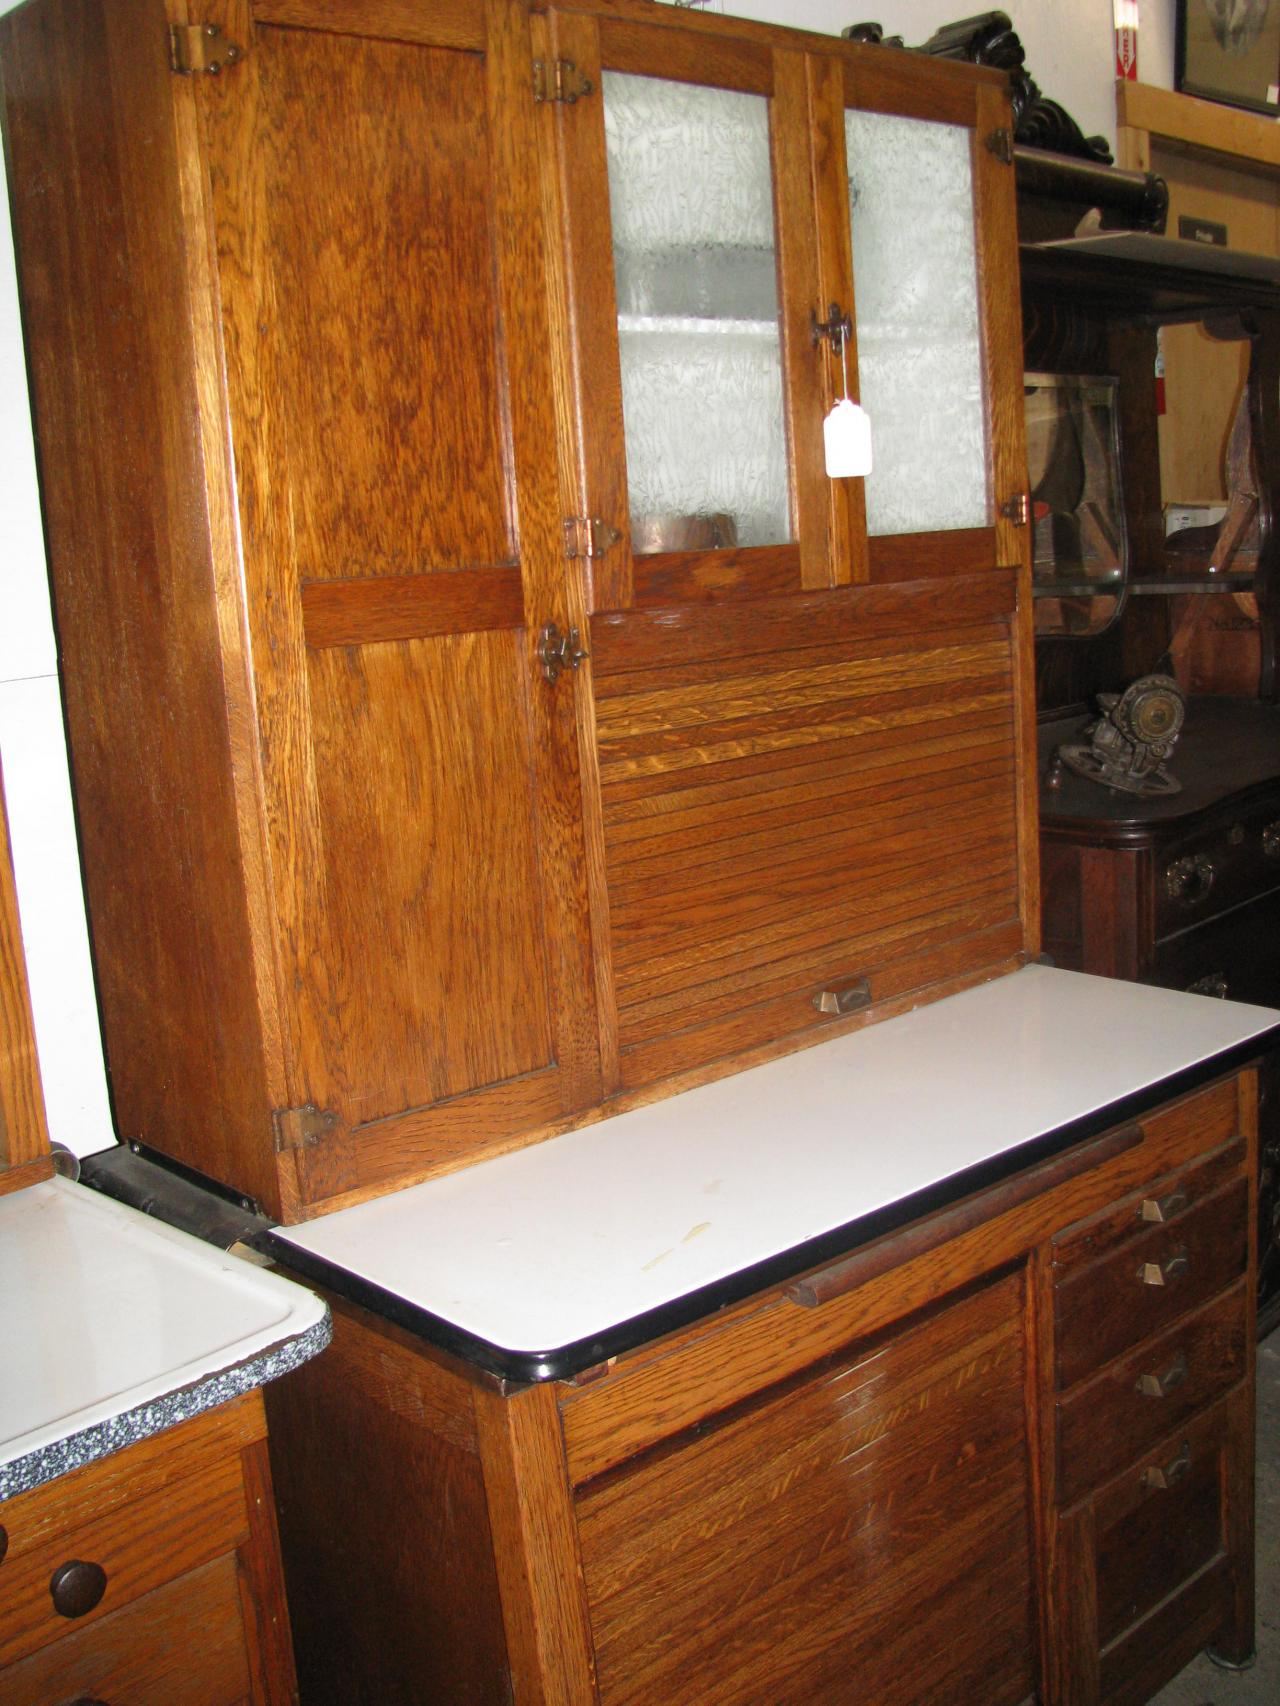 ... Napanee Bakers Cabinet W/ 2 Roll Down Doors Circa 1920 ...